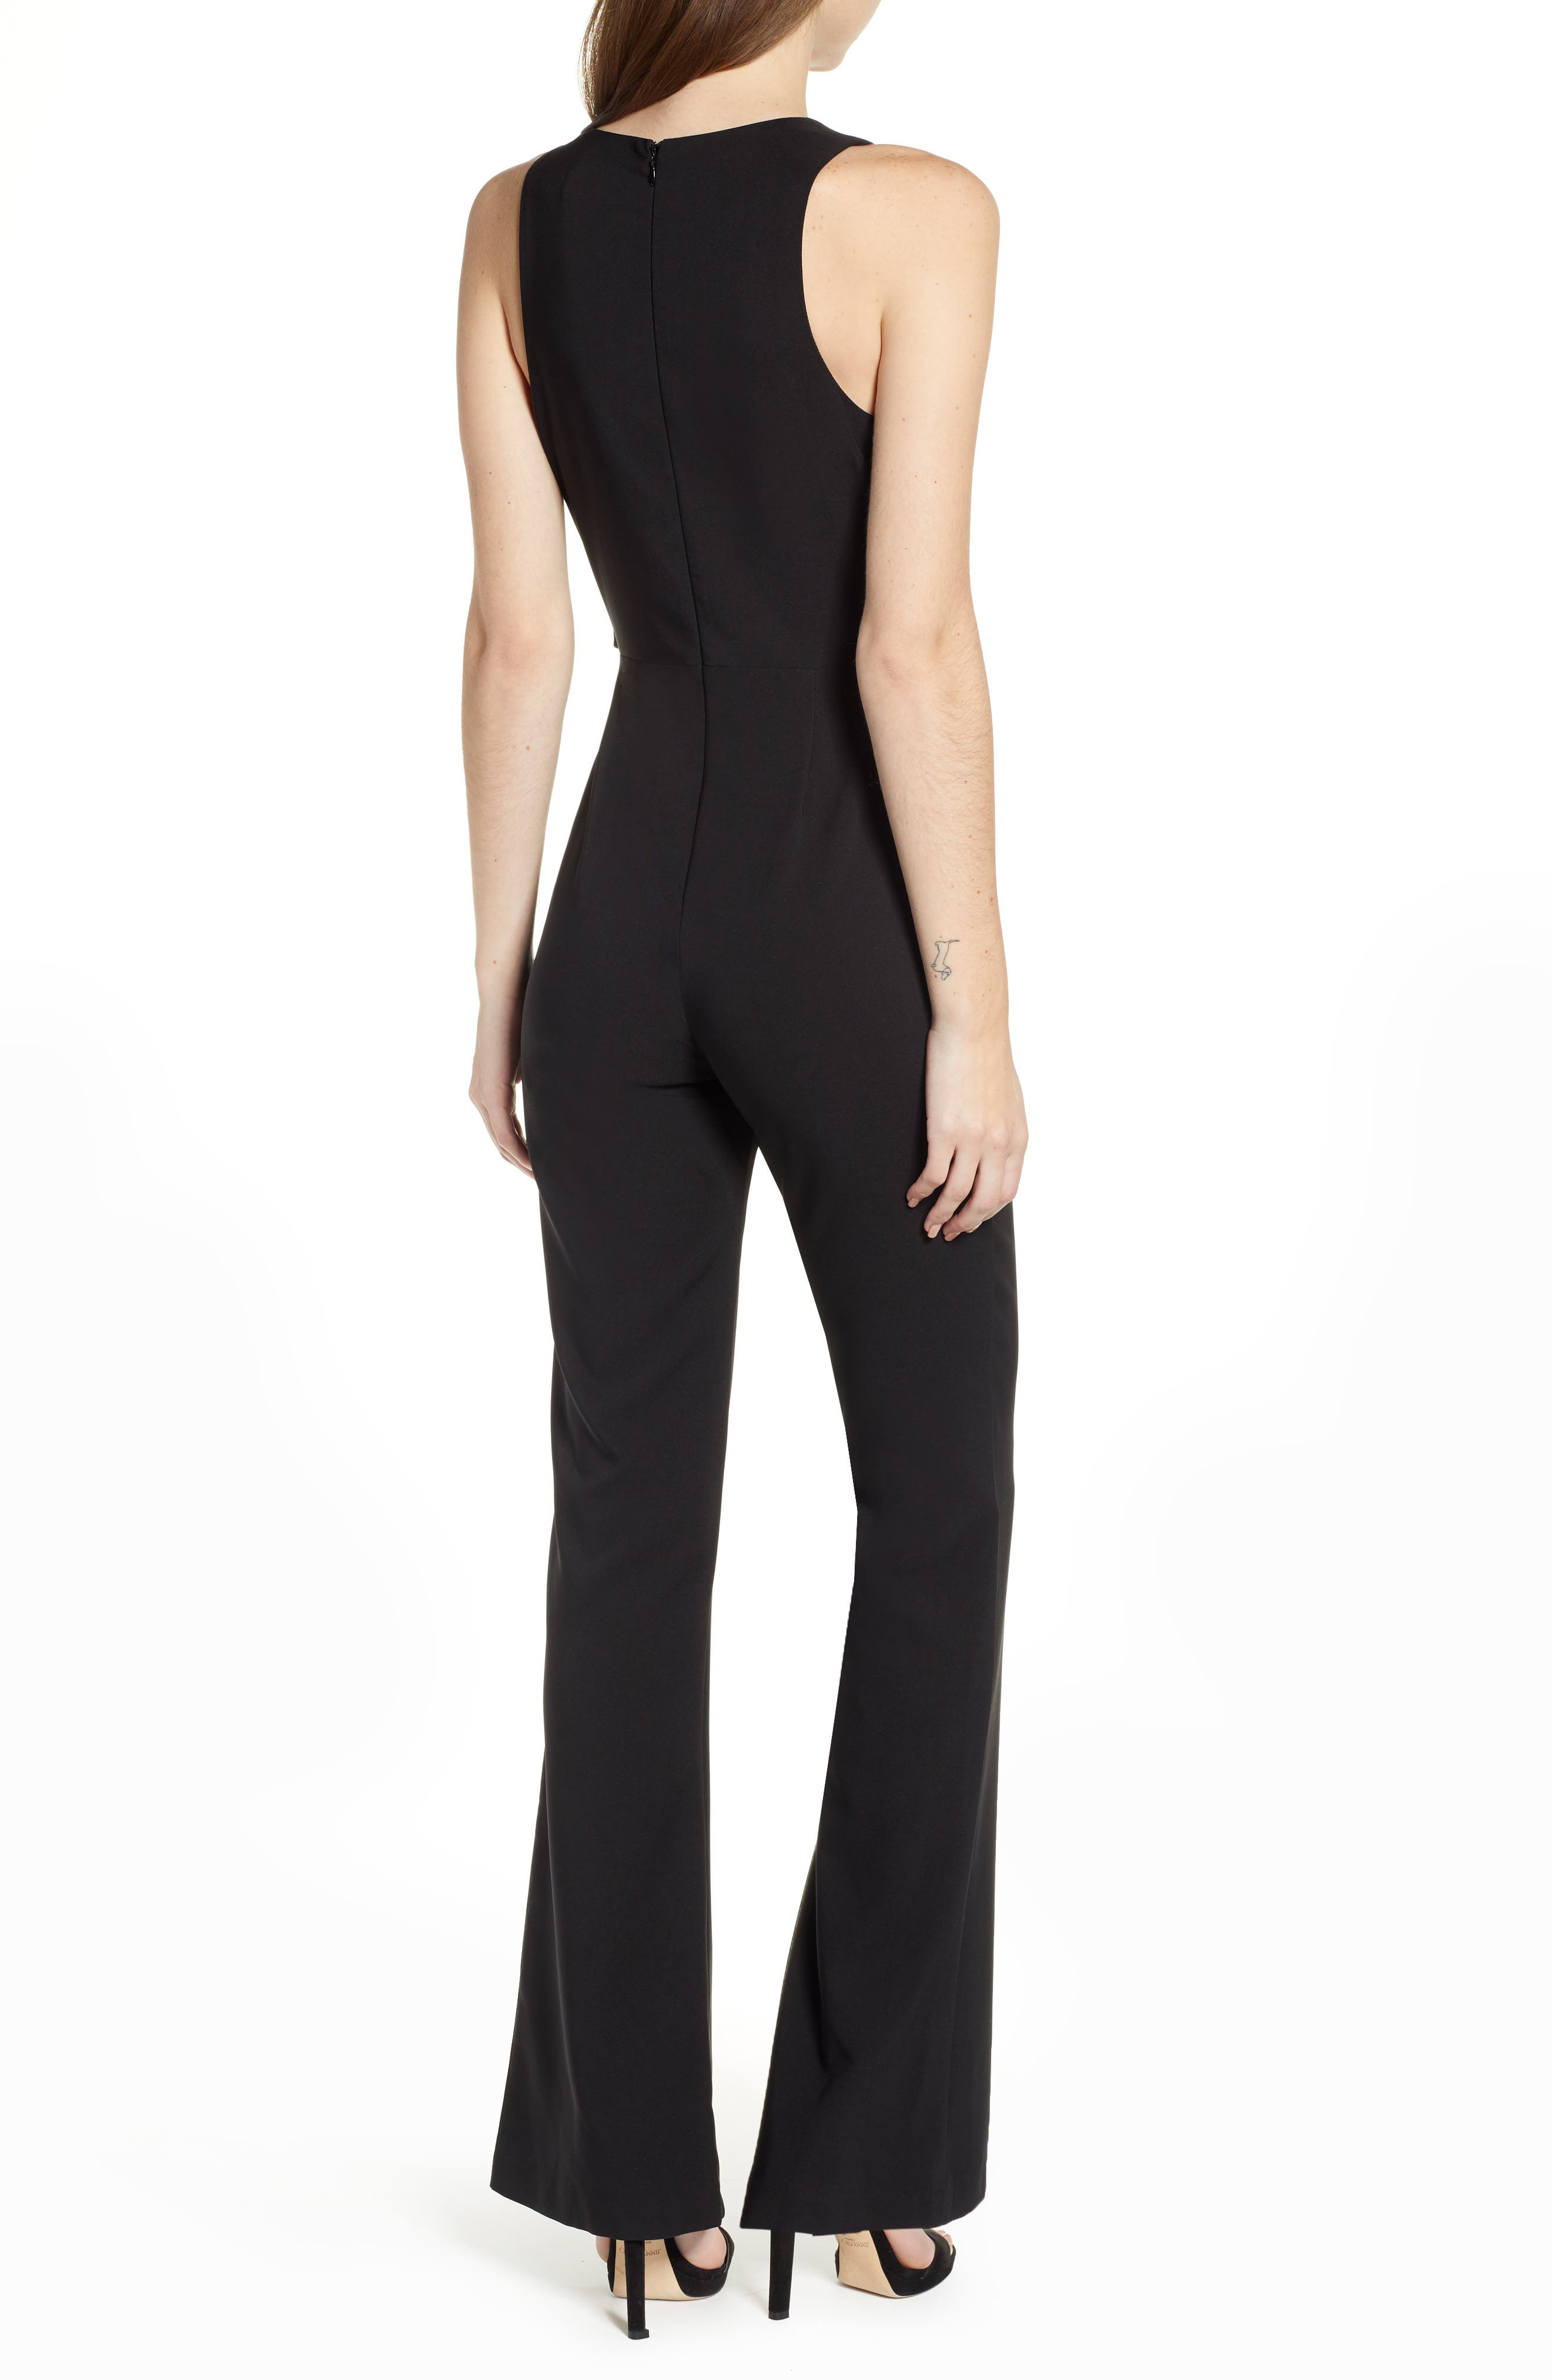 SOCIALITE, Tie Front Jumpsuit, Alternate thumbnail 2, color, BLACK